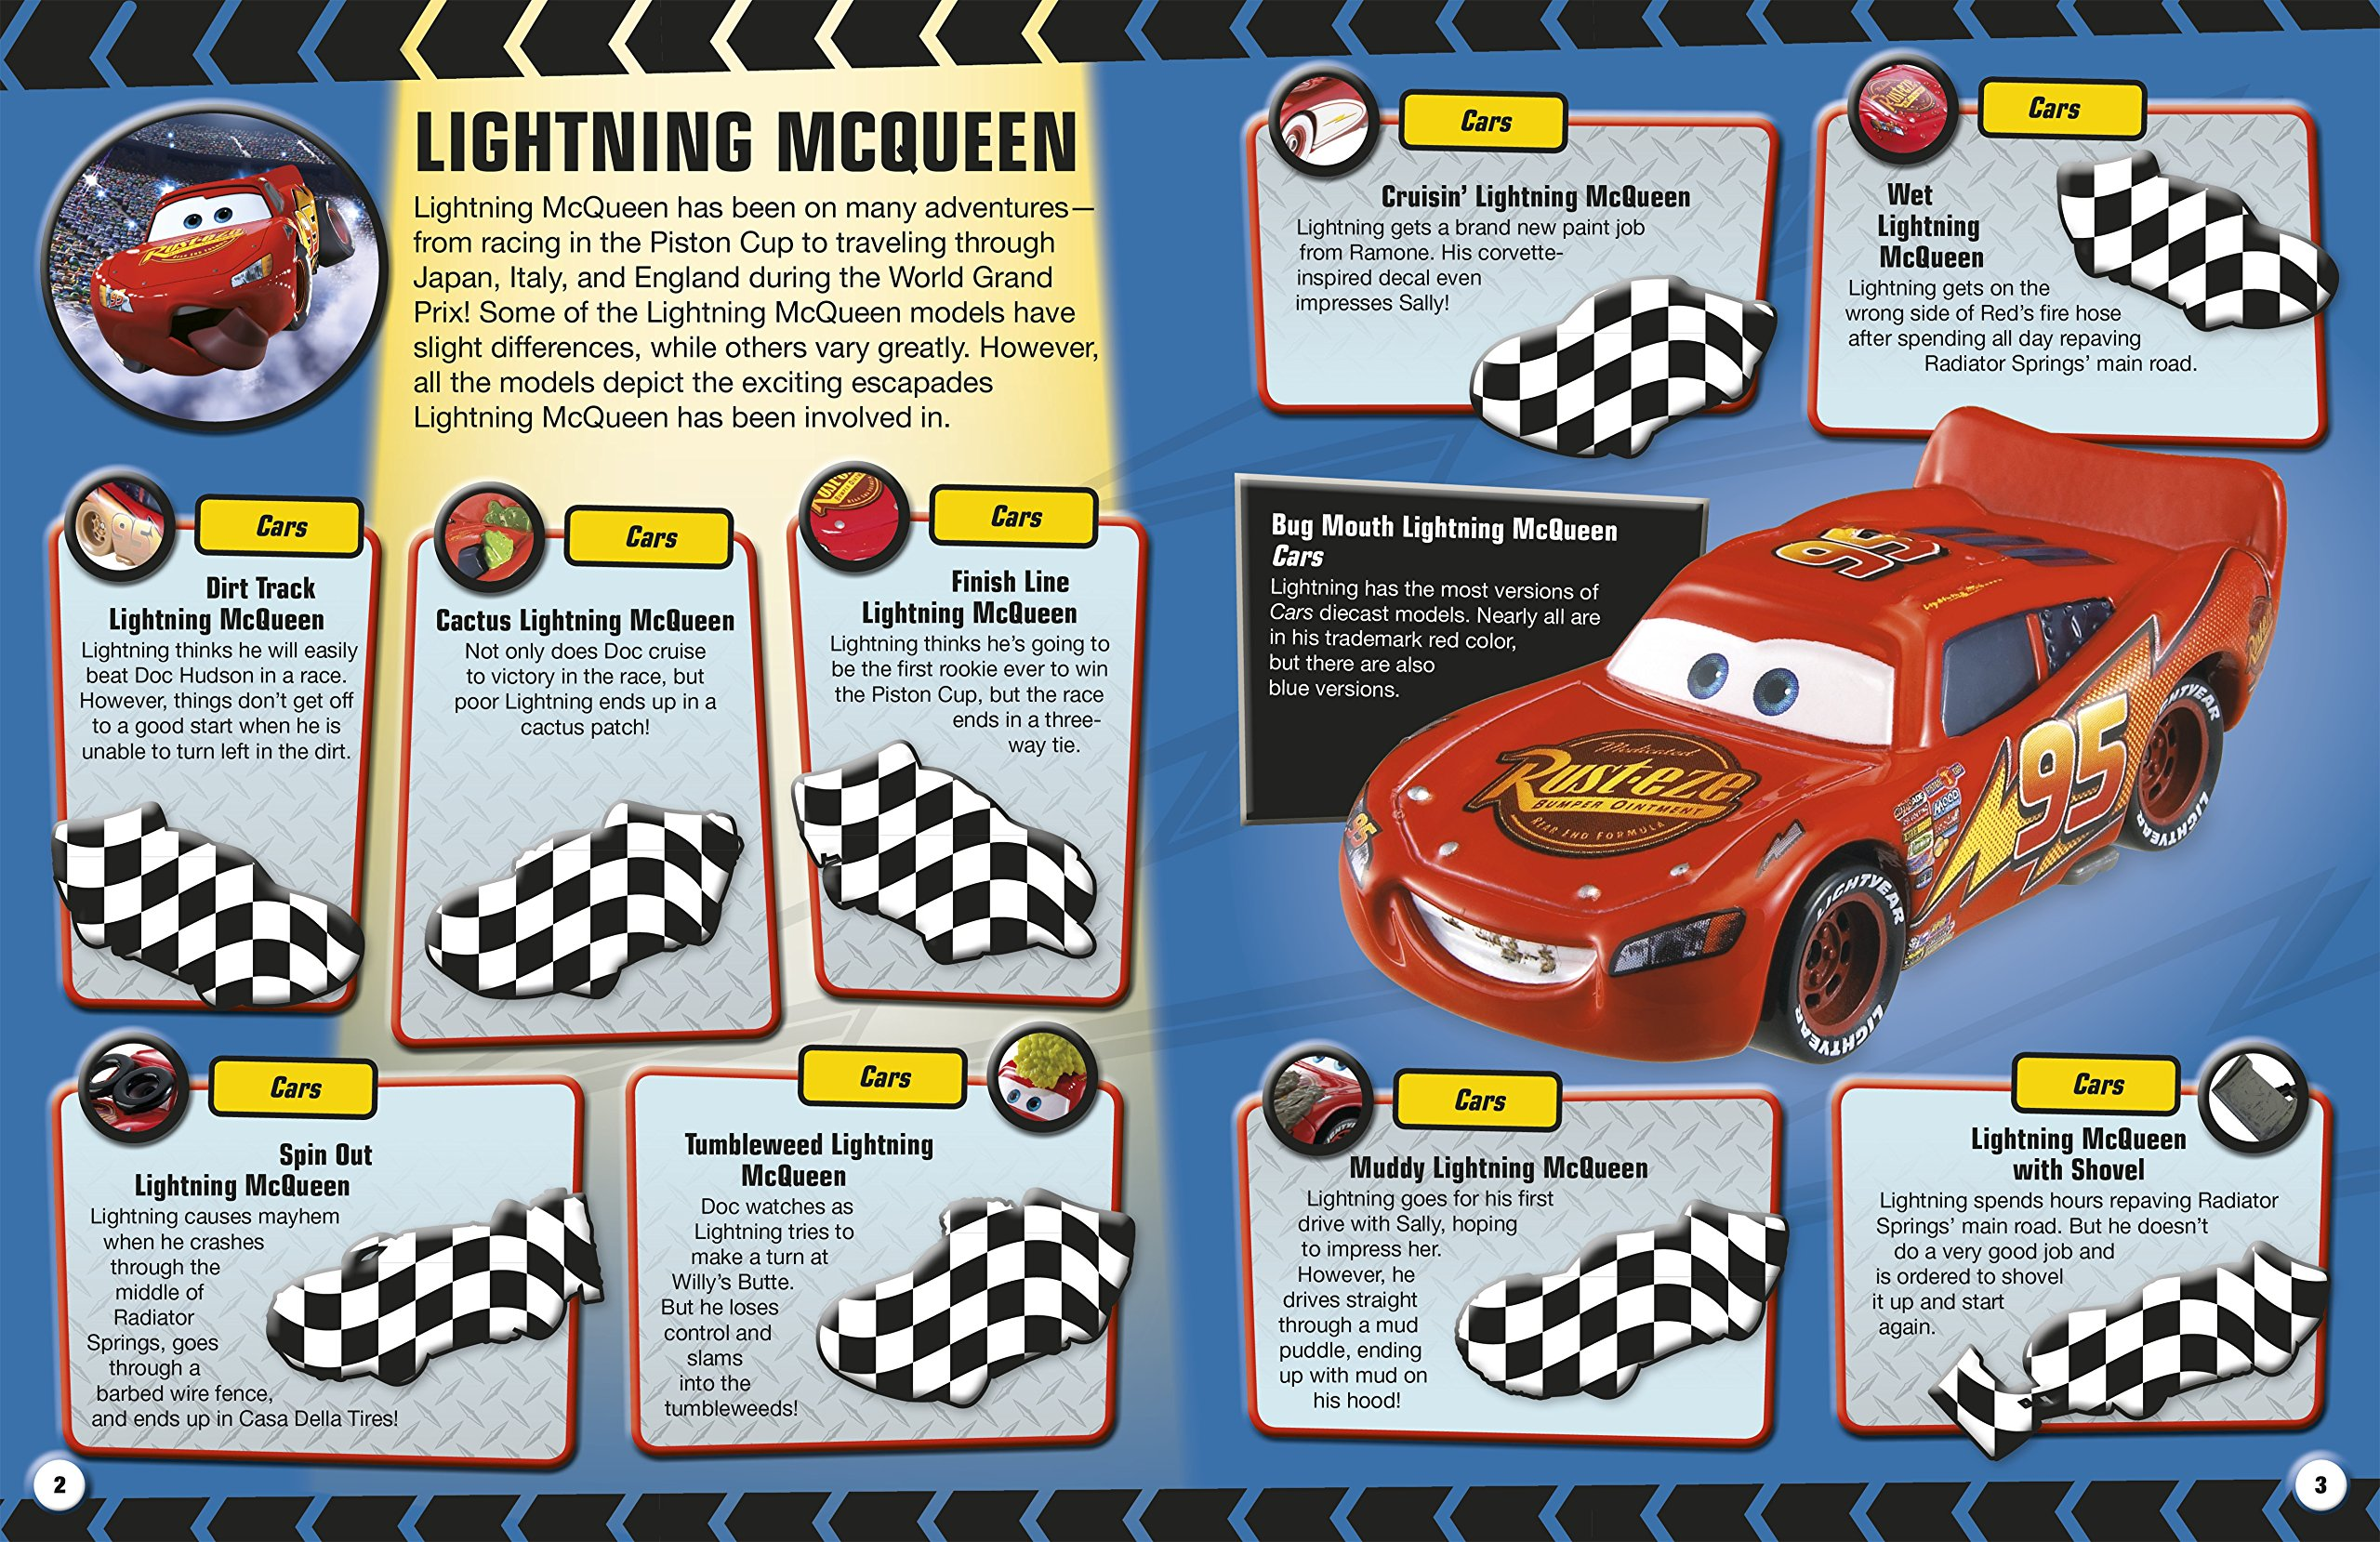 Ultimate Sticker Collection: Disney Pixar Cars (Ultimate Sticker Collections) by DK Publishing Dorling Kindersley (Image #4)